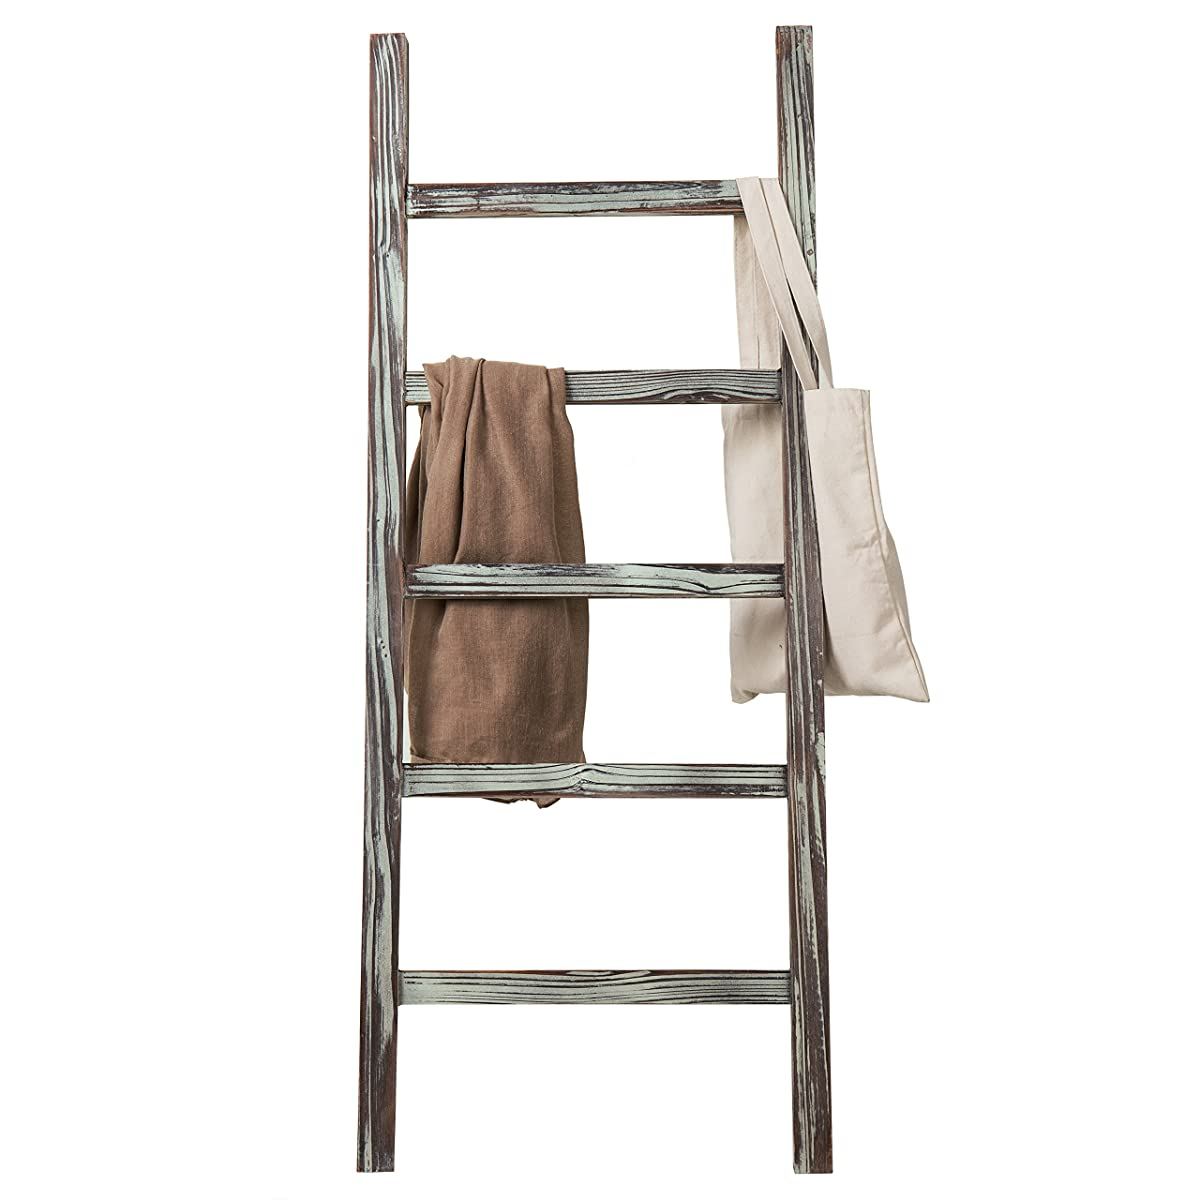 MyGift Decorative Rustic Barnwood 5-Rung Blanket Ladder Organizer, Hanging Towel Bar Rack - 48 x 19-inches